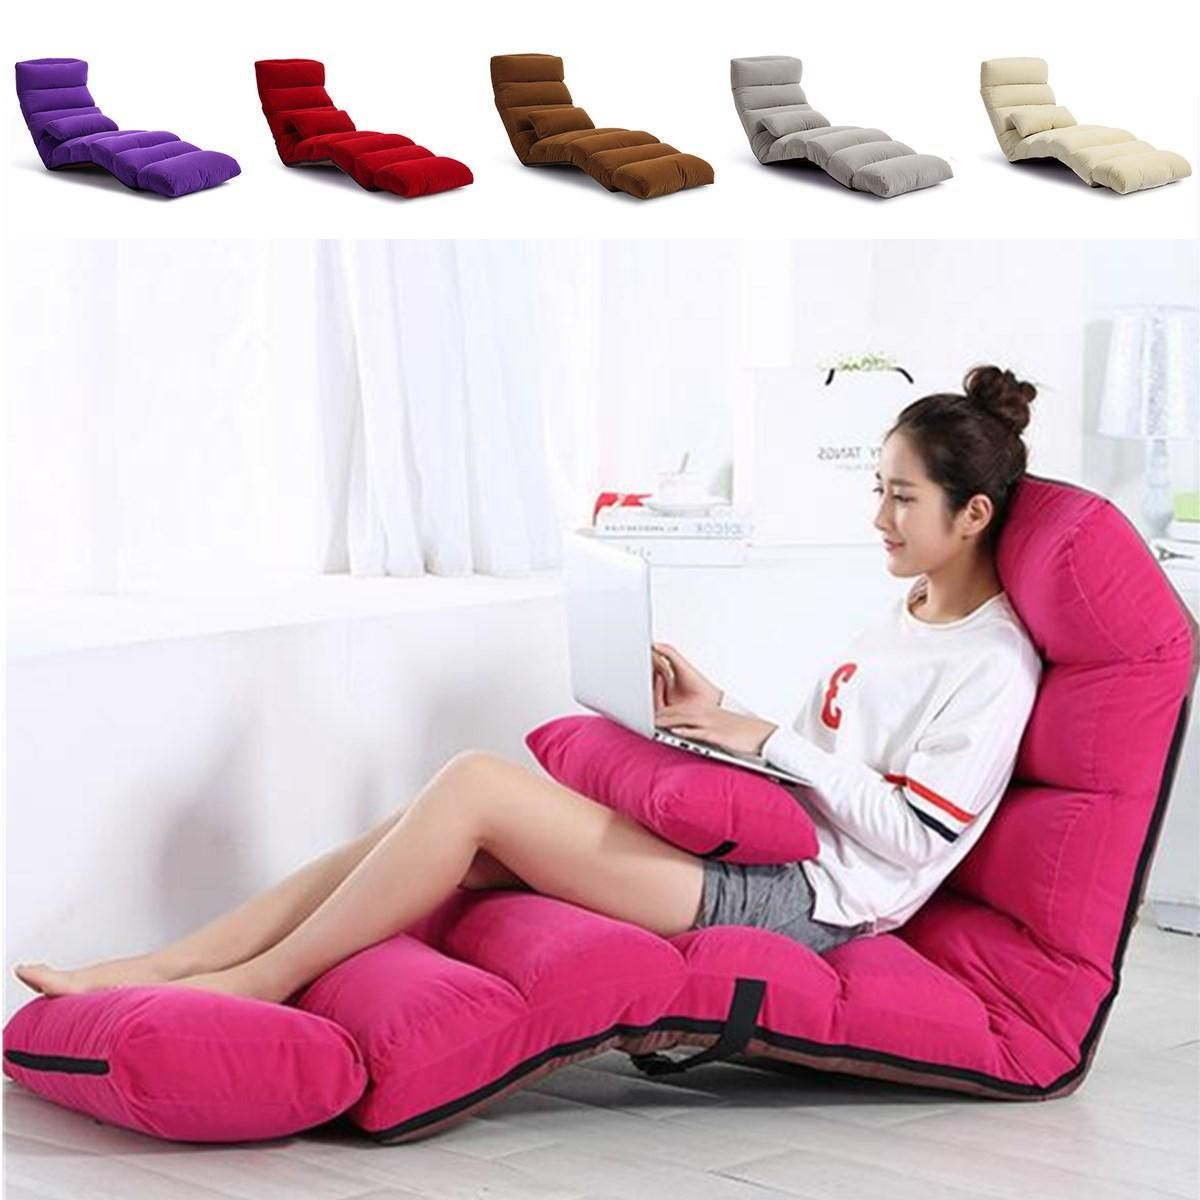 stylish desk chair with back support